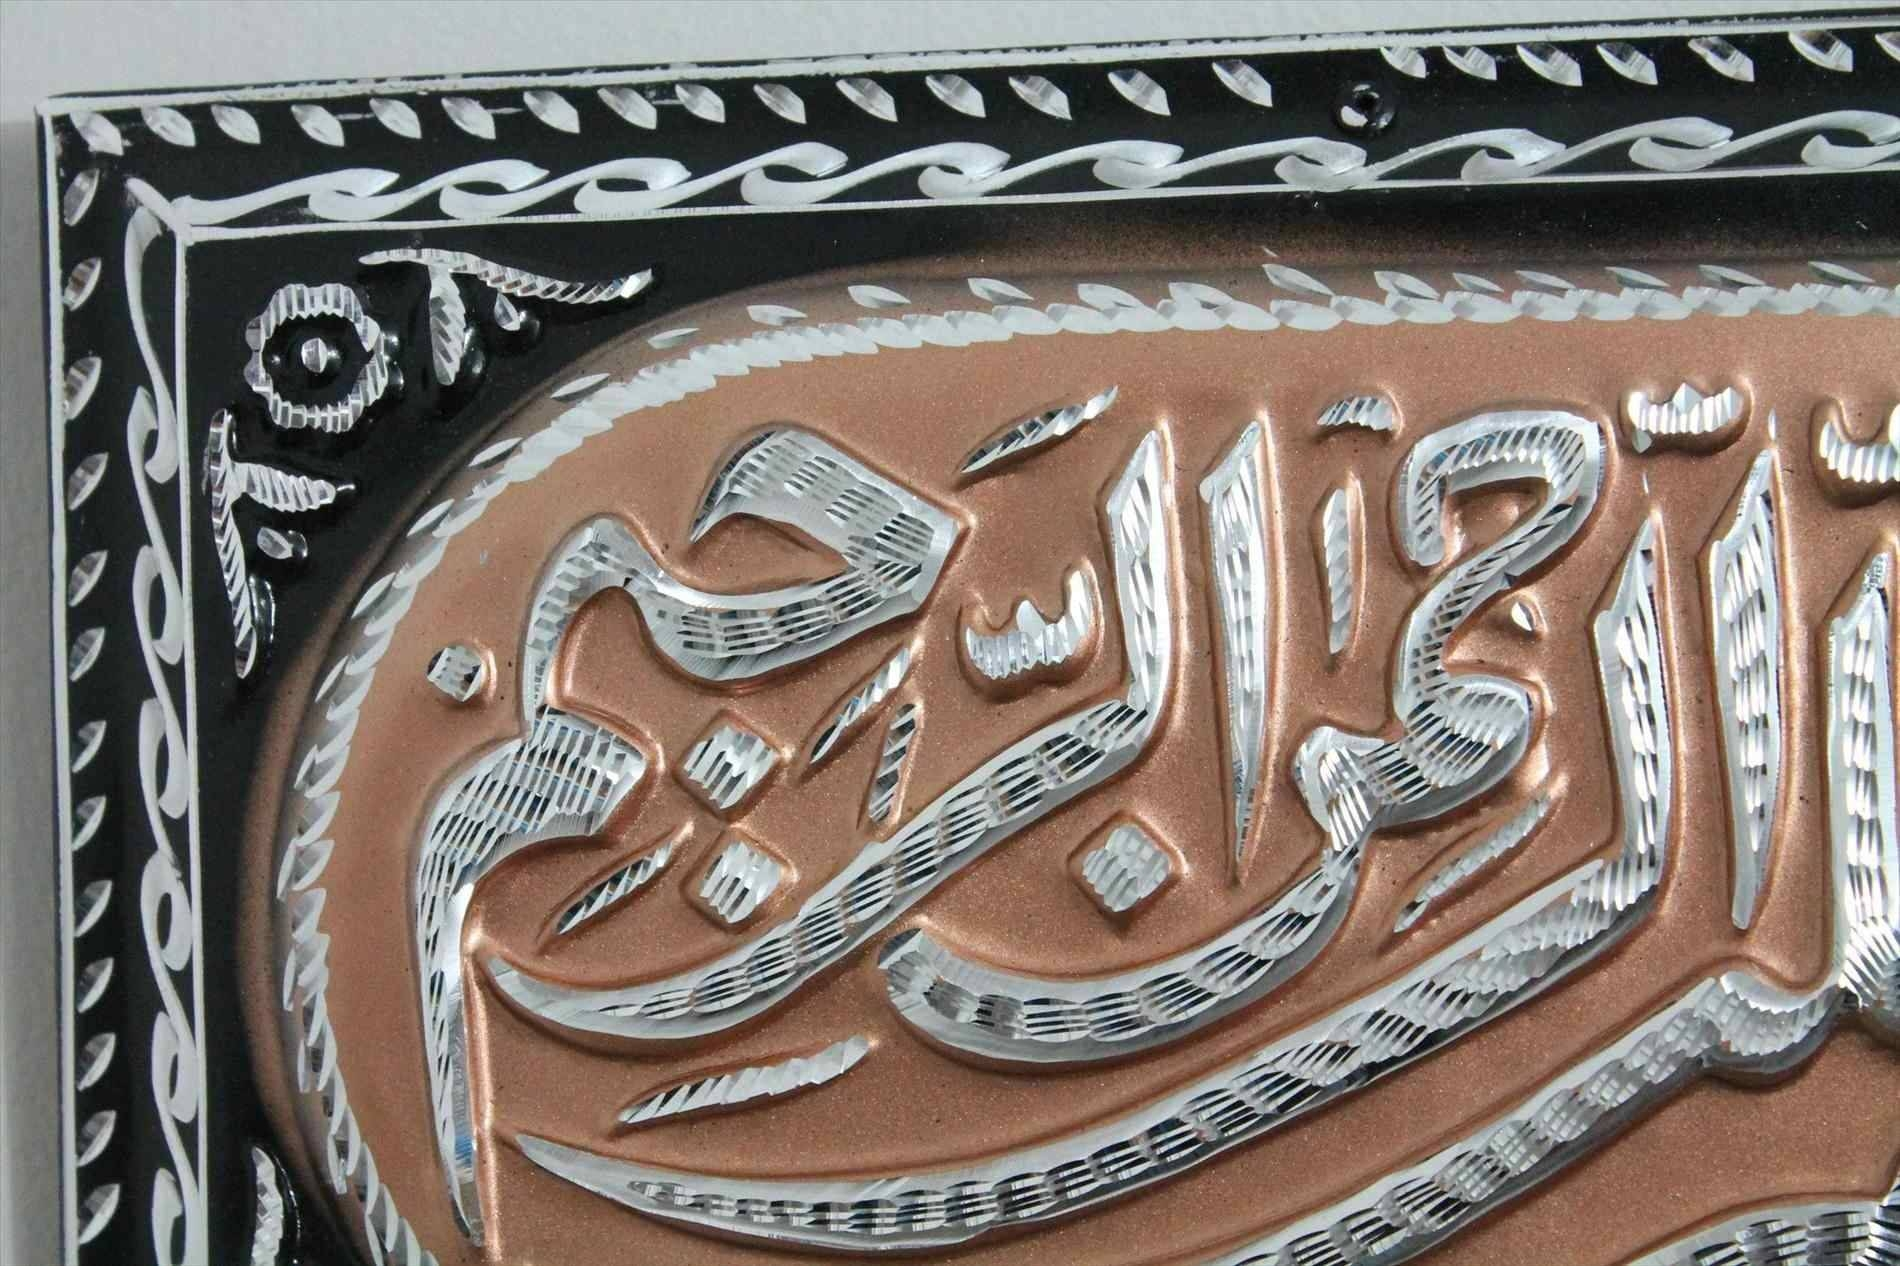 Swt And Muhammad Islamic Islamic Metal Wall Art Art On Metal Hand In Most Recent Islamic Metal Wall Art (View 18 of 20)